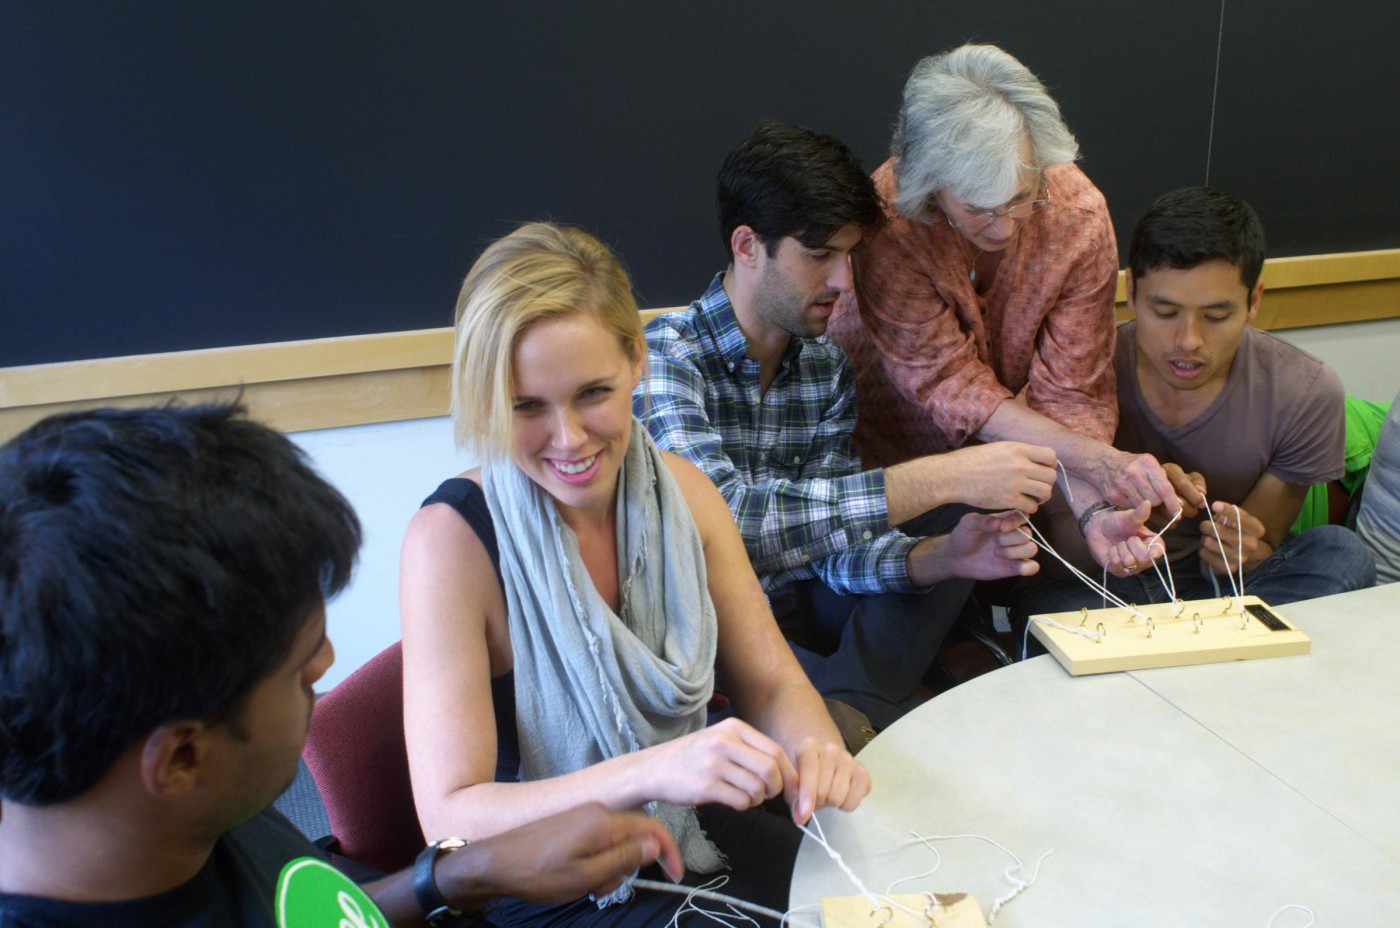 Ravi Gupta, Erica Giles, Evan Levy, and Alex Domingo learn the ropes from Susan Richman.